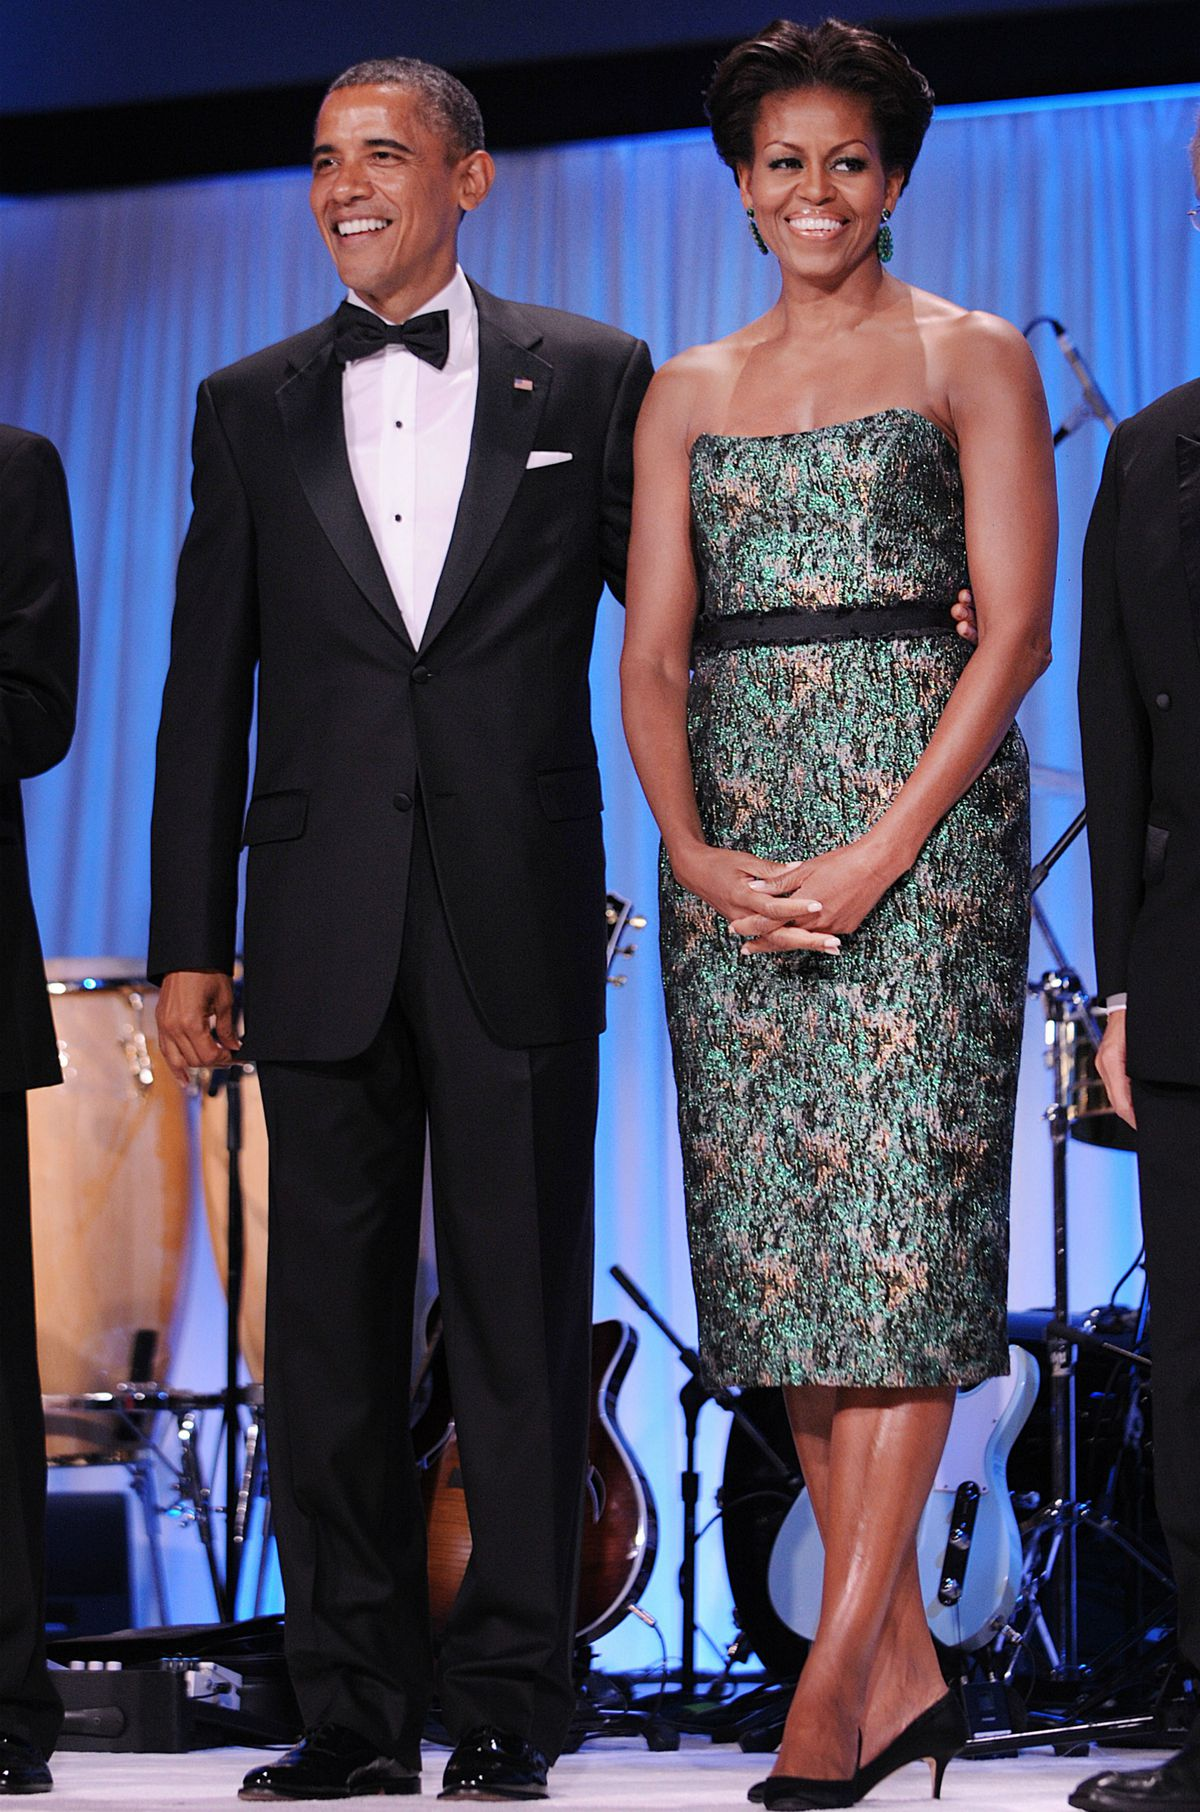 Michelle Obama on stage at the Congressional Hispanic Caucus Institute gala in September 2011